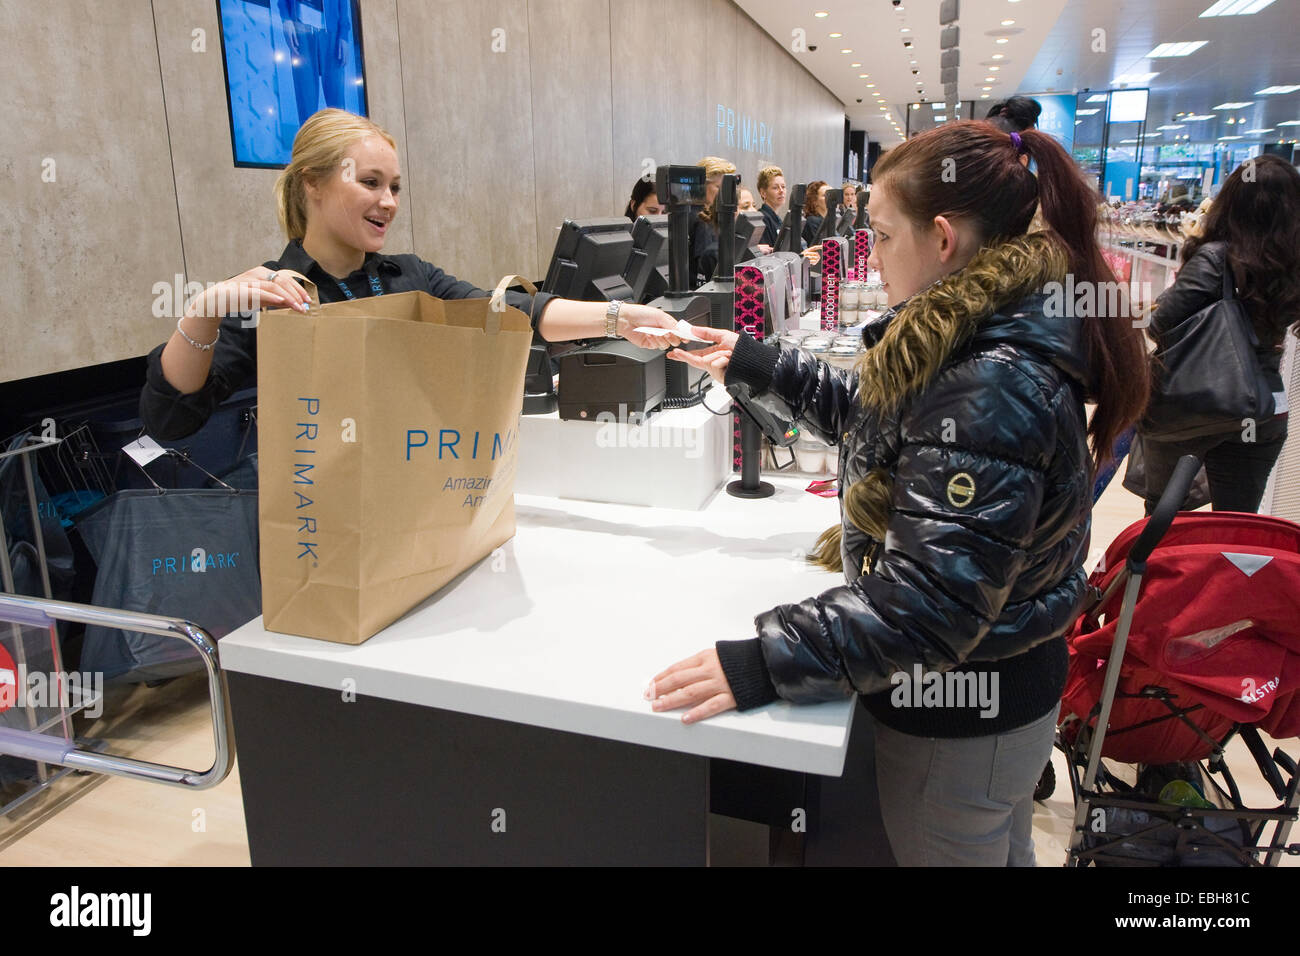 ENSCHEDE, NETHERLANDS - AUG 19, 2014: People are shopping in a new branch of warehouse Primark on the first day - Stock Image